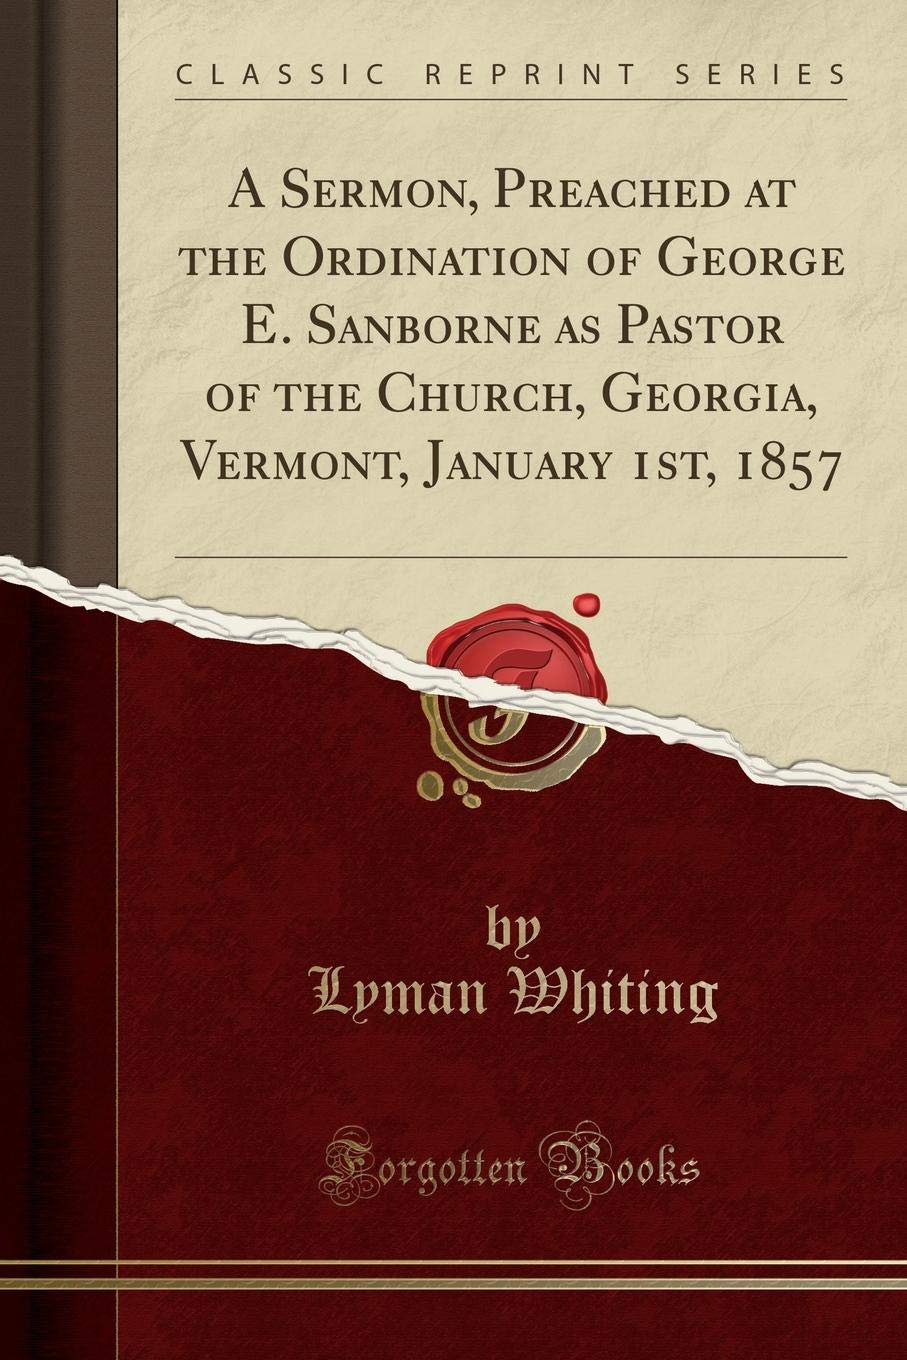 Download A Sermon, Preached at the Ordination of George E. Sanborne as Pastor of the Church, Georgia, Vermont, January 1st, 1857 (Classic Reprint) ebook